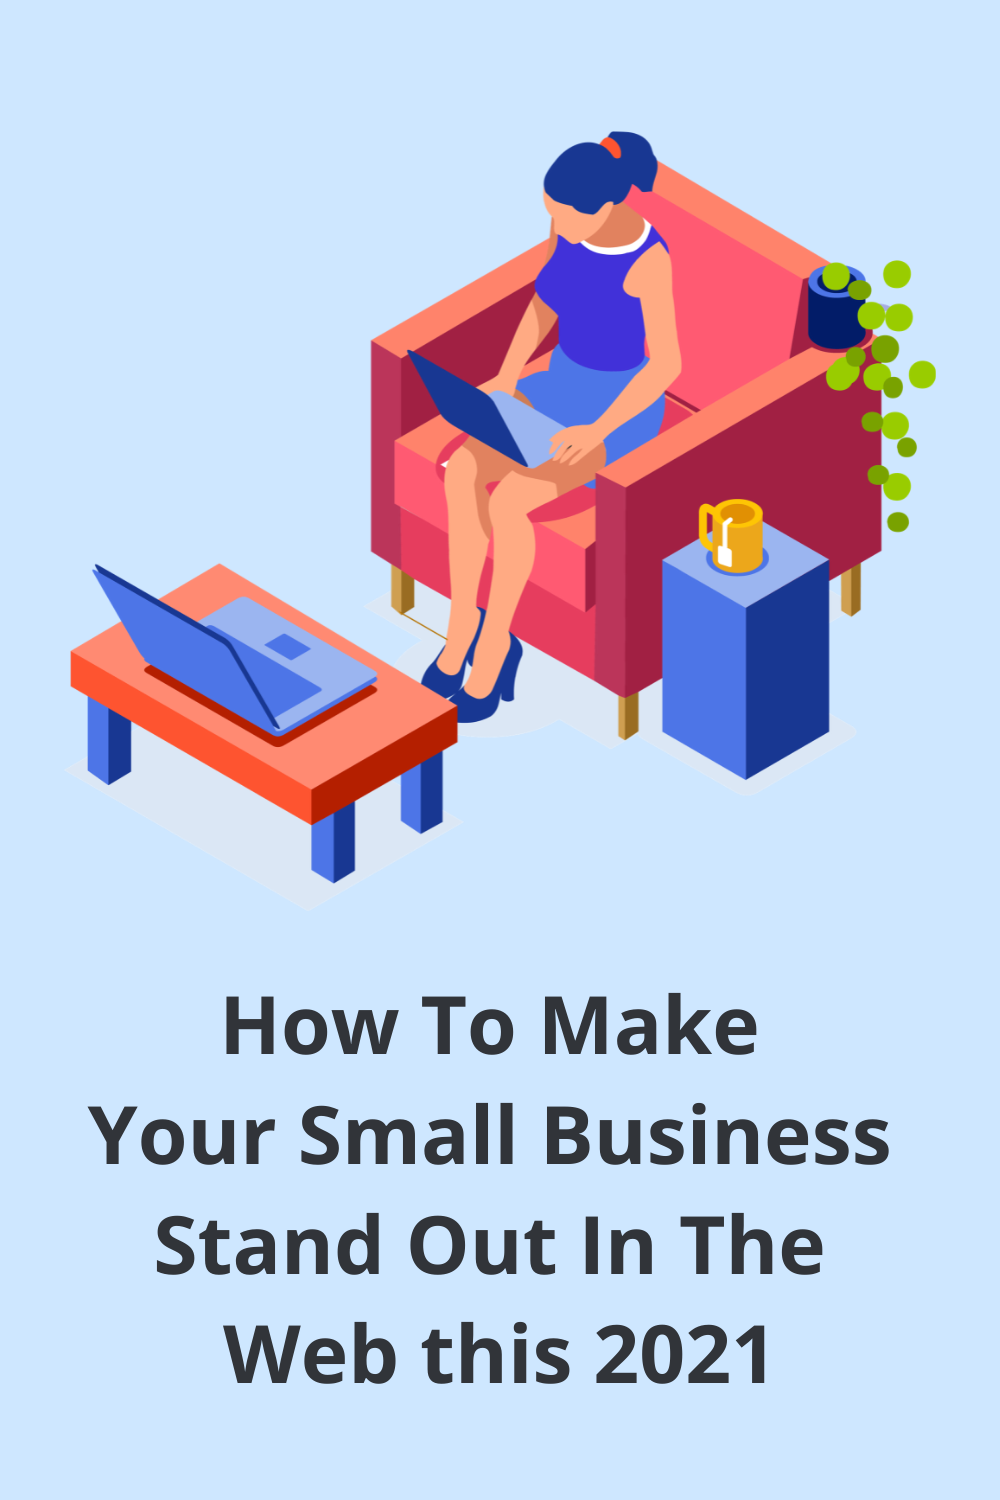 small business,stand out,marketing approach,how can i make my business stand out